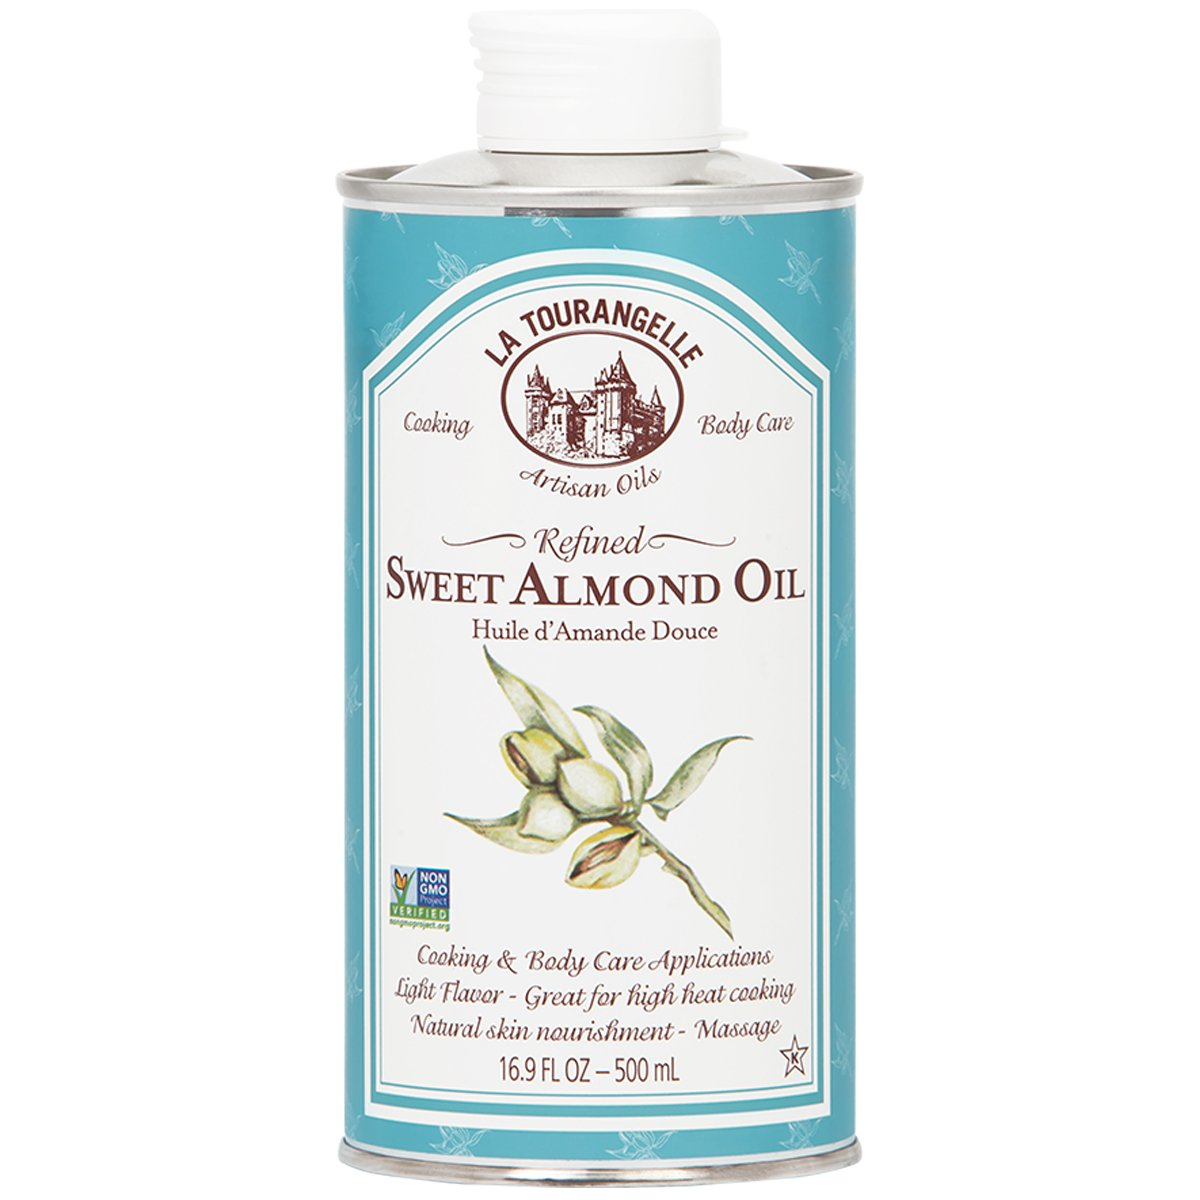 La Tourangelle Sweet Almond Oil 16.9 Fl. Oz., For Both Cooking or Skin Care, Great for Massage or High-Heat Cooking by La Tourangelle